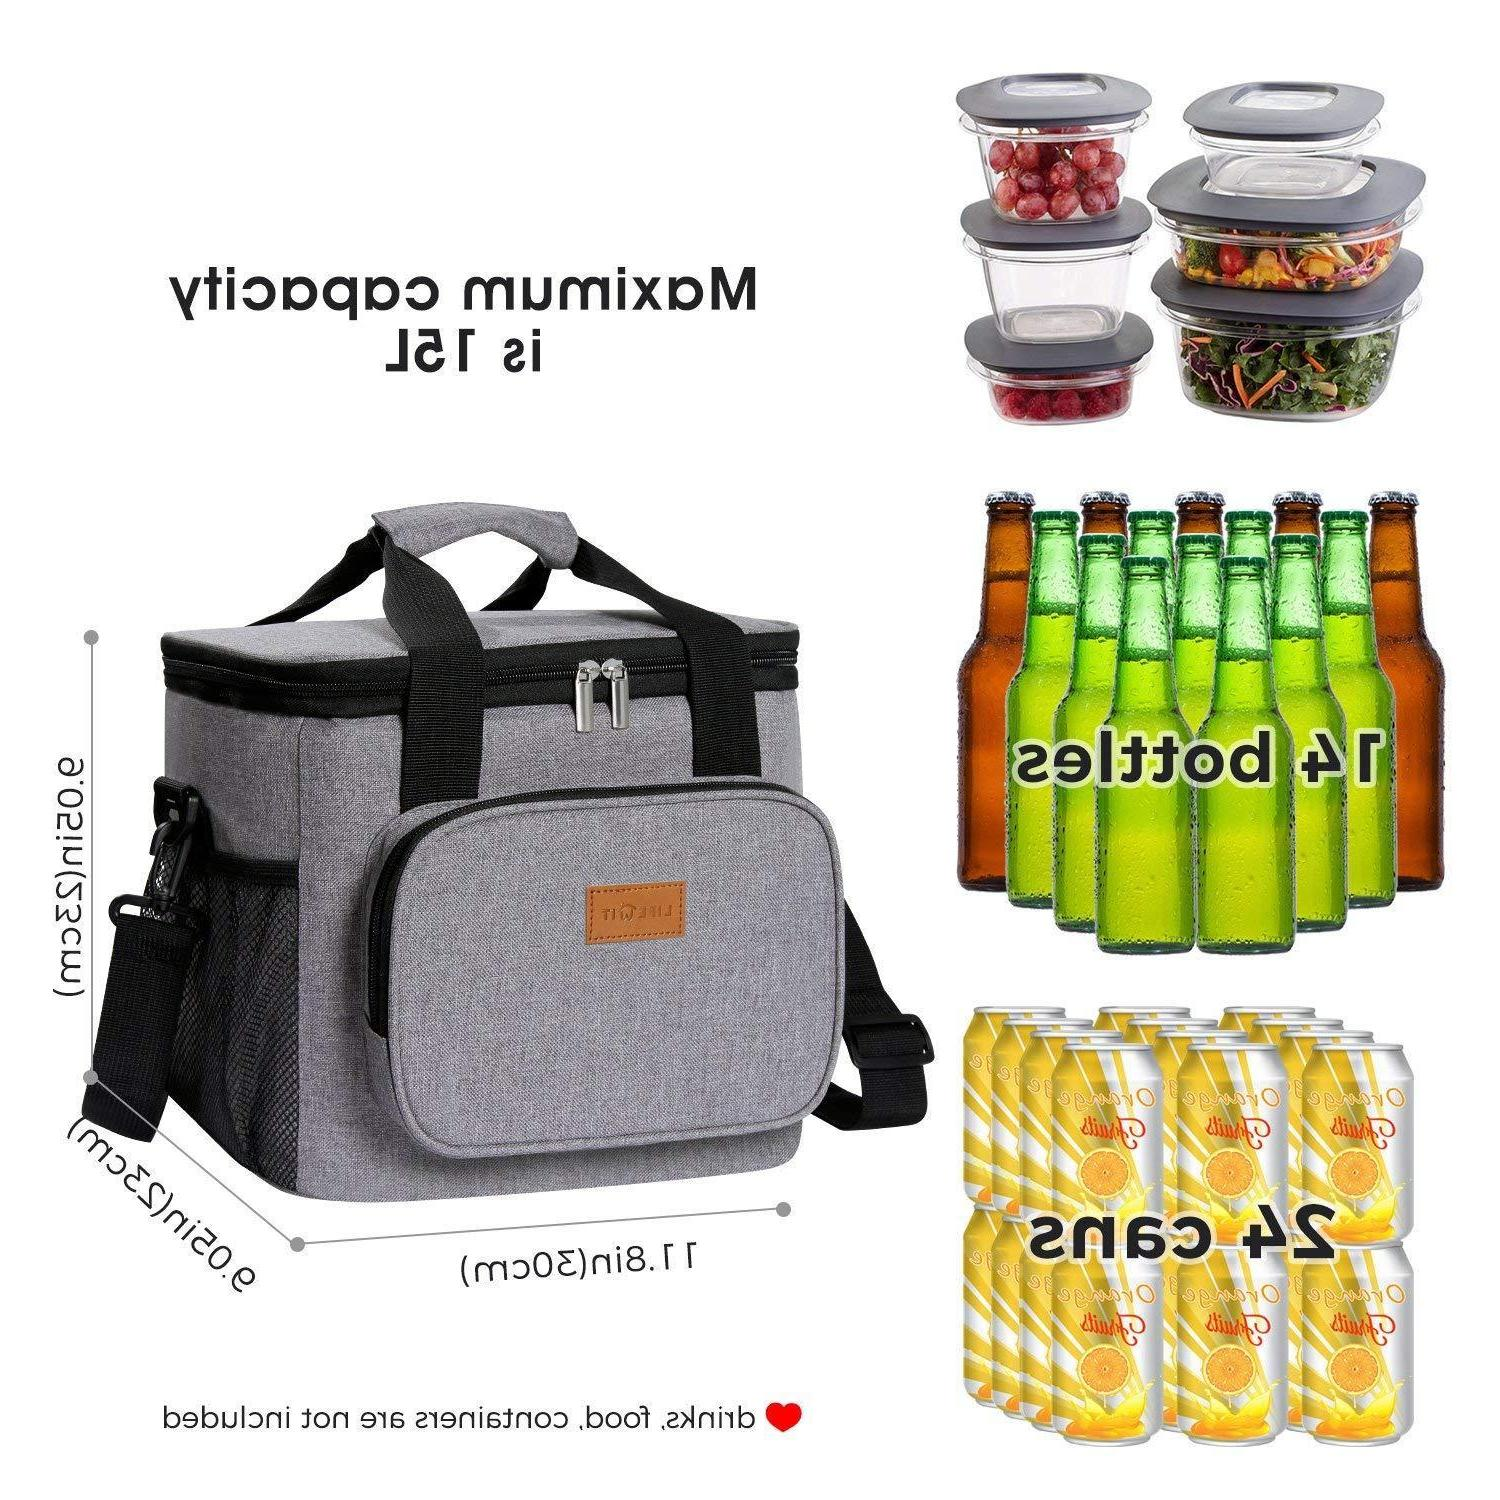 Lifewit Insulated Lunch Bag Box Storage for Beach/Picnic/Camping